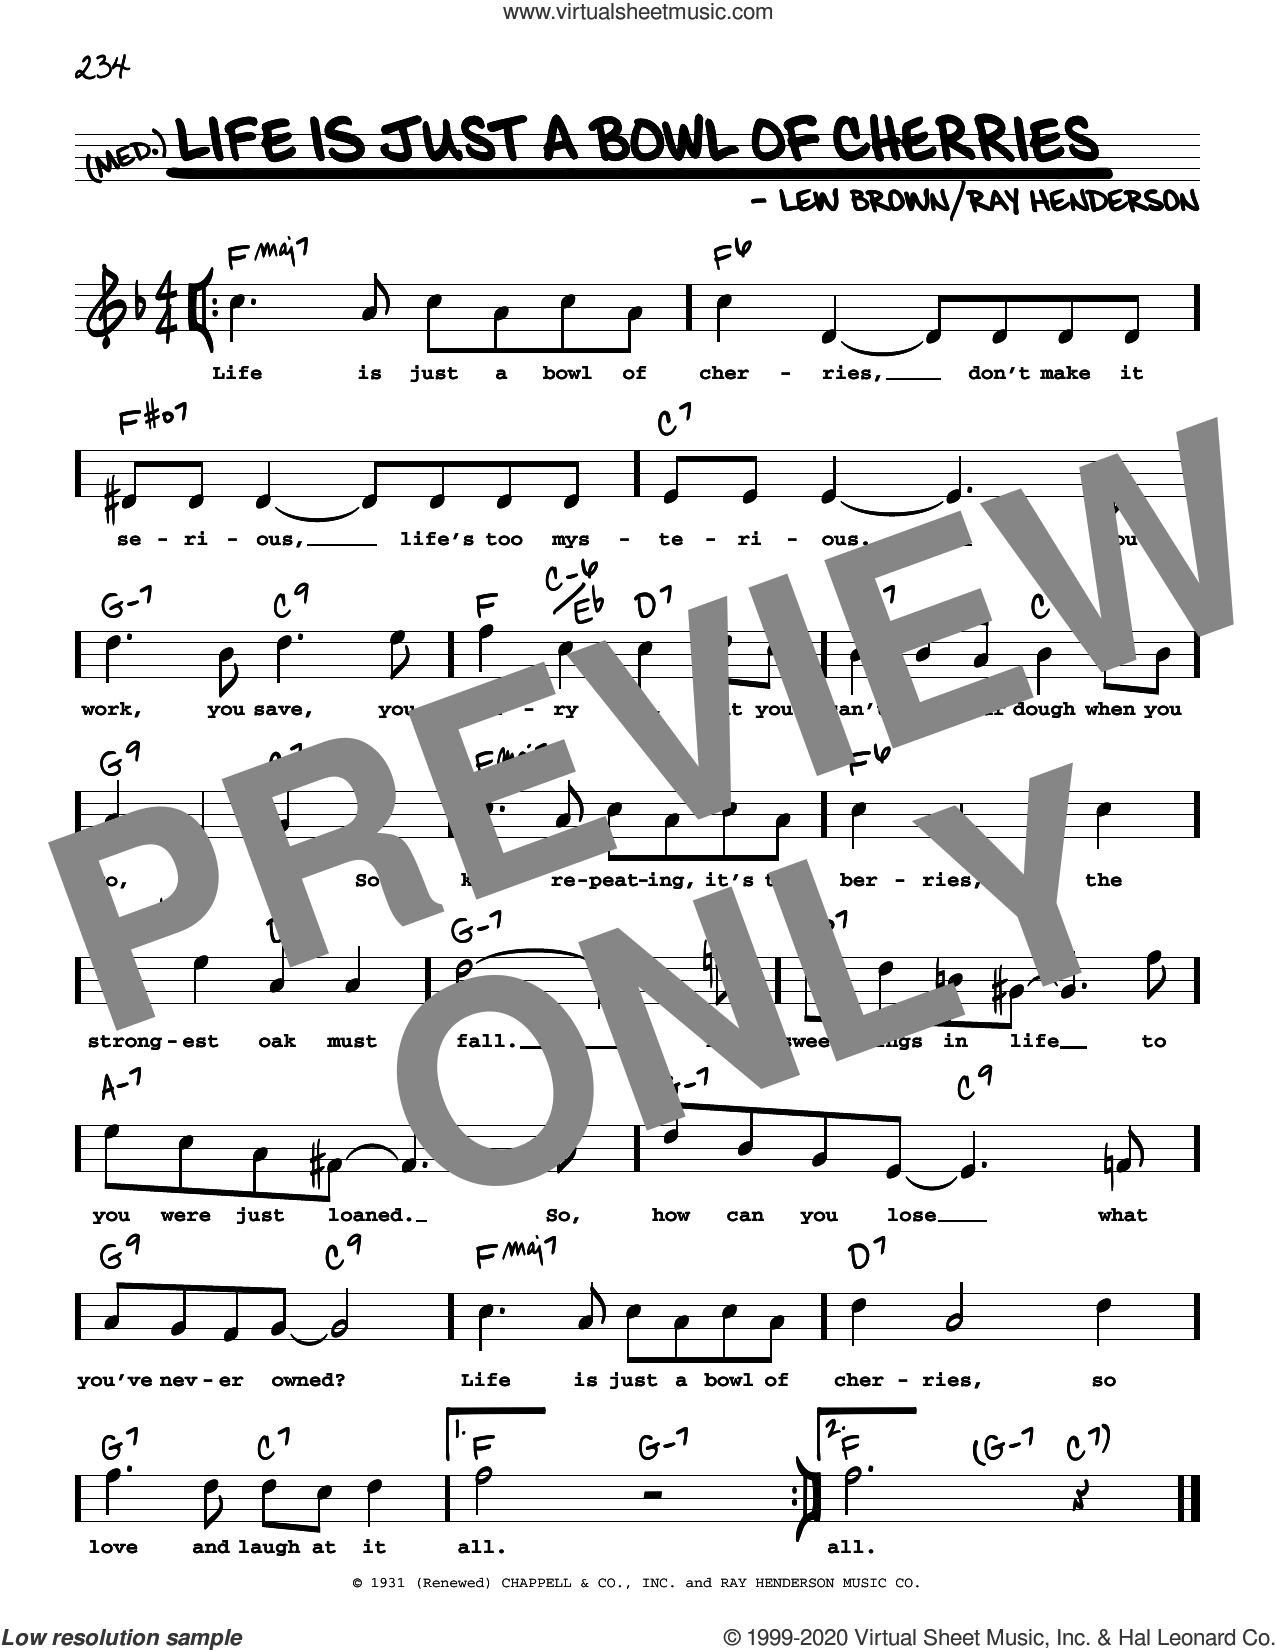 Life Is Just A Bowl Of Cherries (High Voice) (from George White's Scandals) sheet music for voice and other instruments (high voice) by Ray Henderson, Lew Brown and Ray Henderson and Lew Brown, intermediate skill level